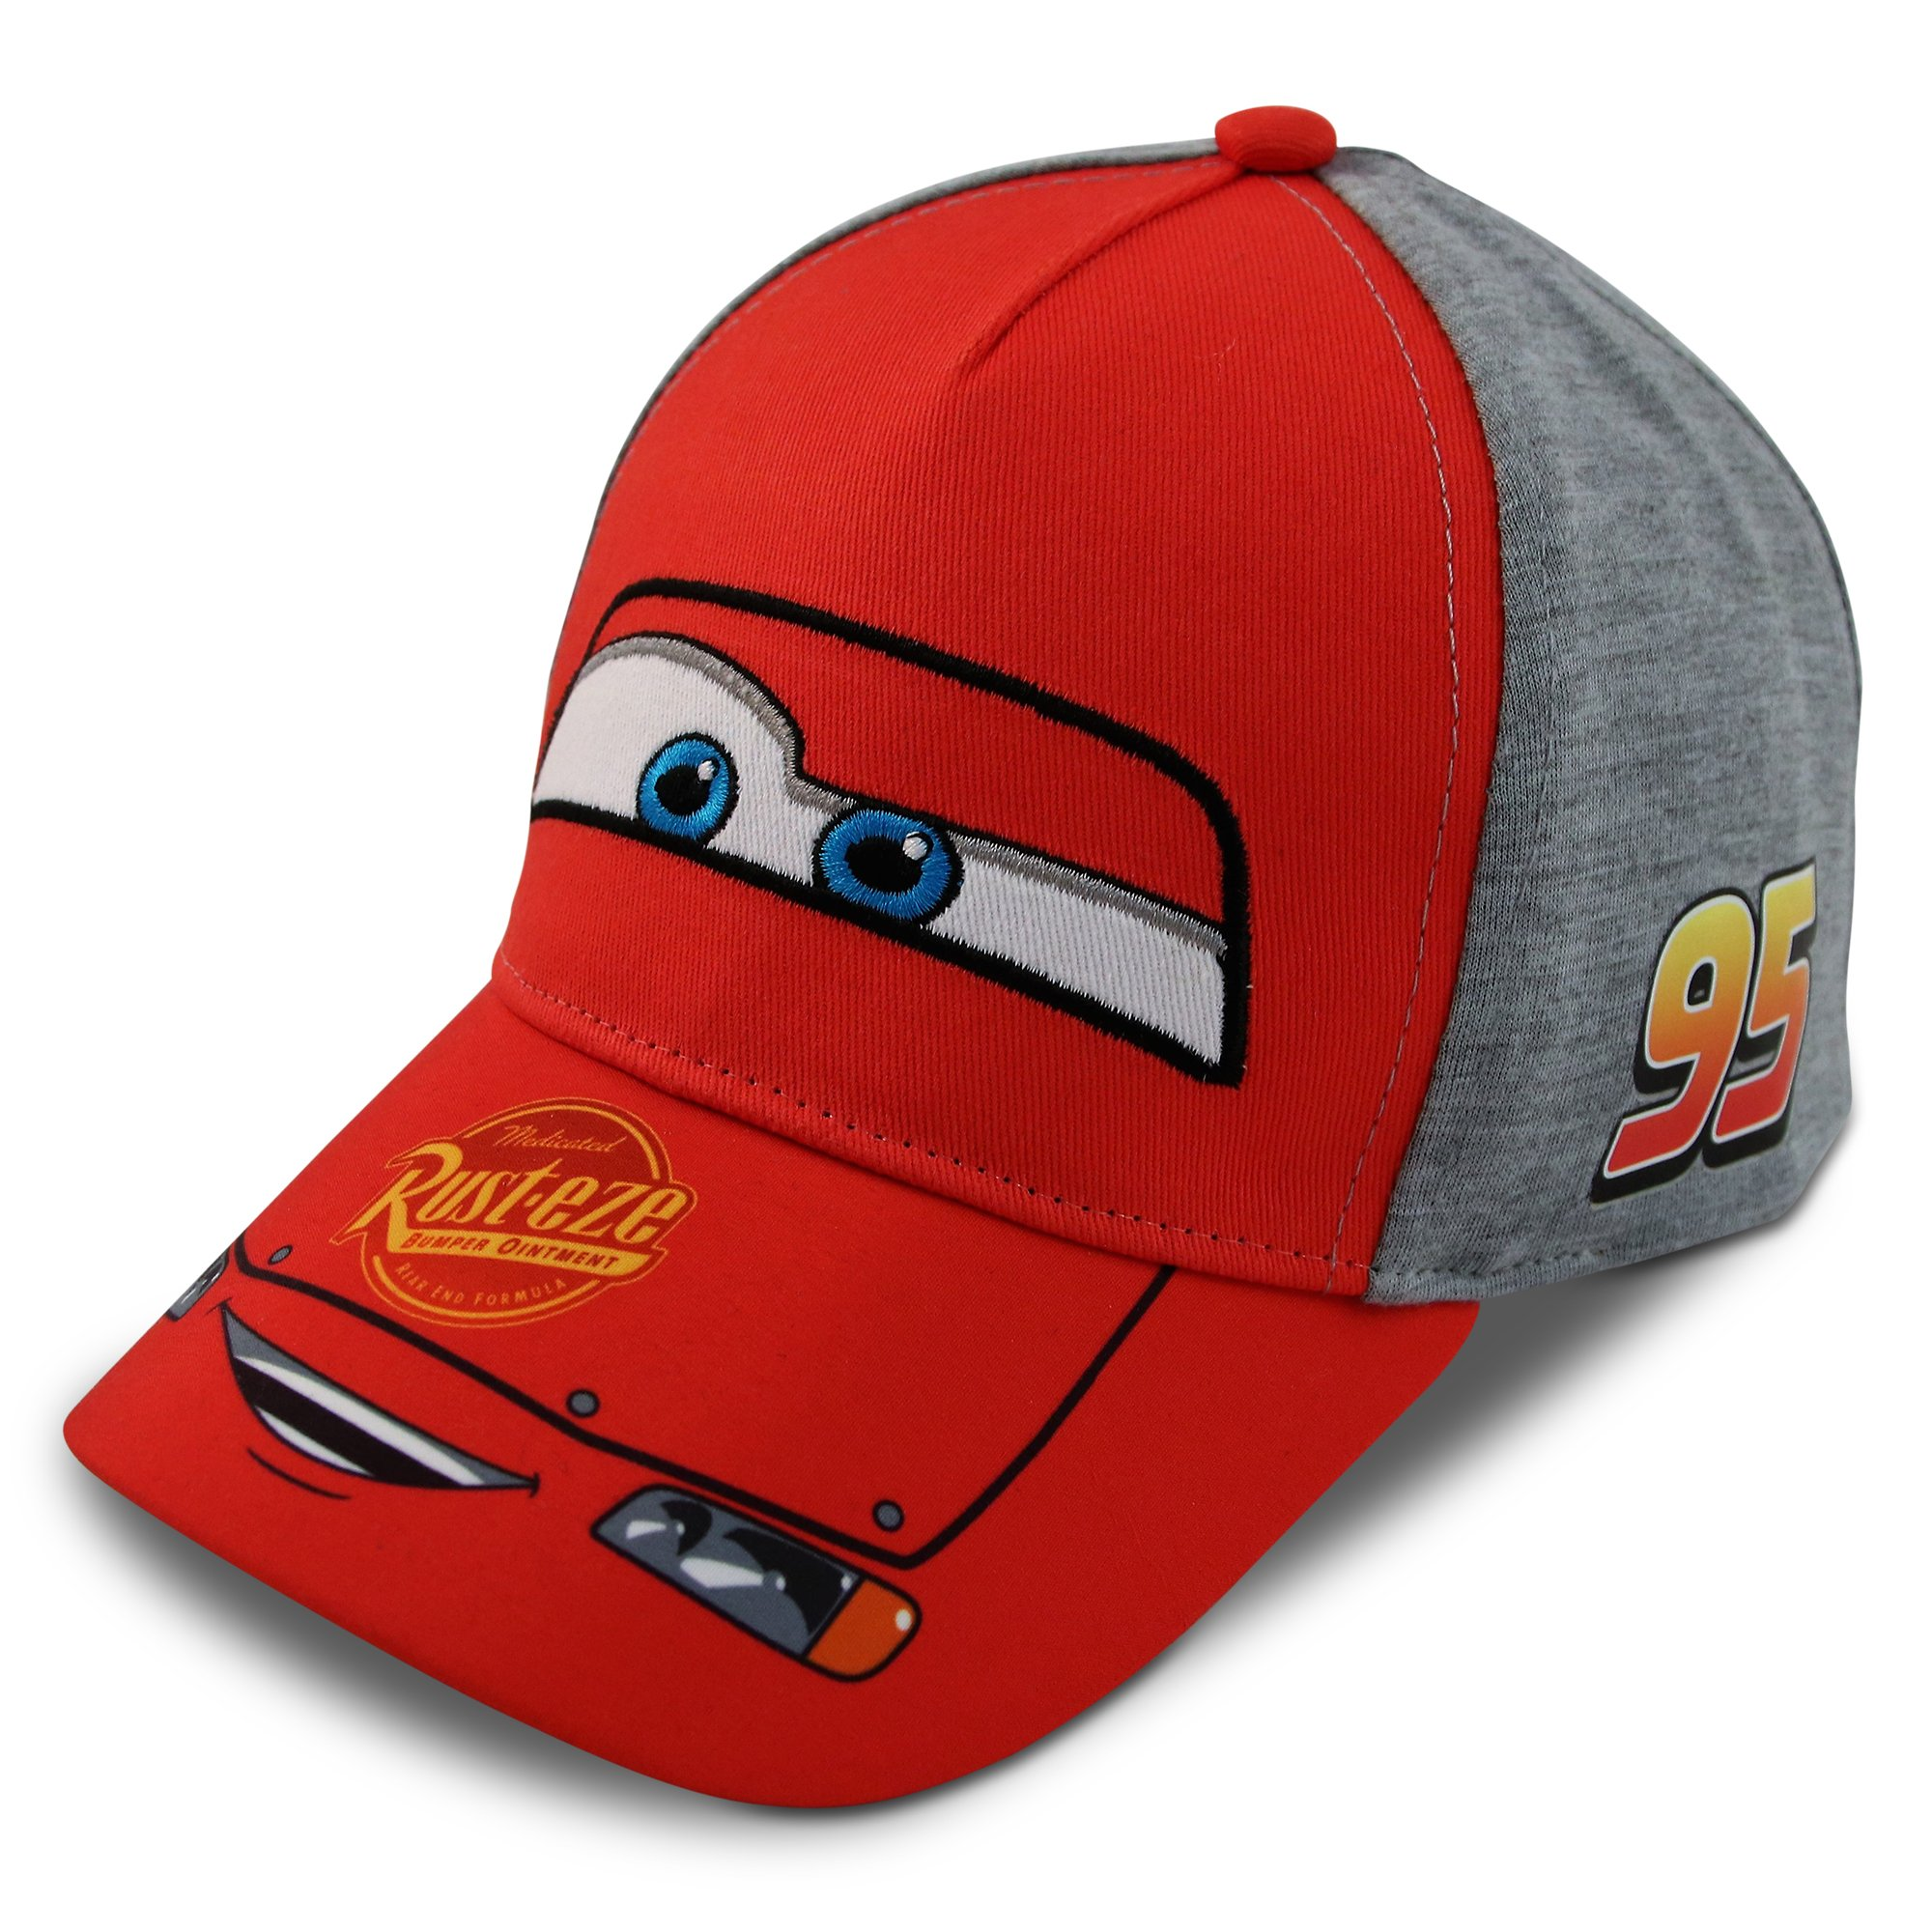 Disney Little Boys Cars Lightning McQueen Character Cotton Baseball Cap, Red/Grey, Age 2-7 (Toddler Boys - Age 2-4 - 51CM)